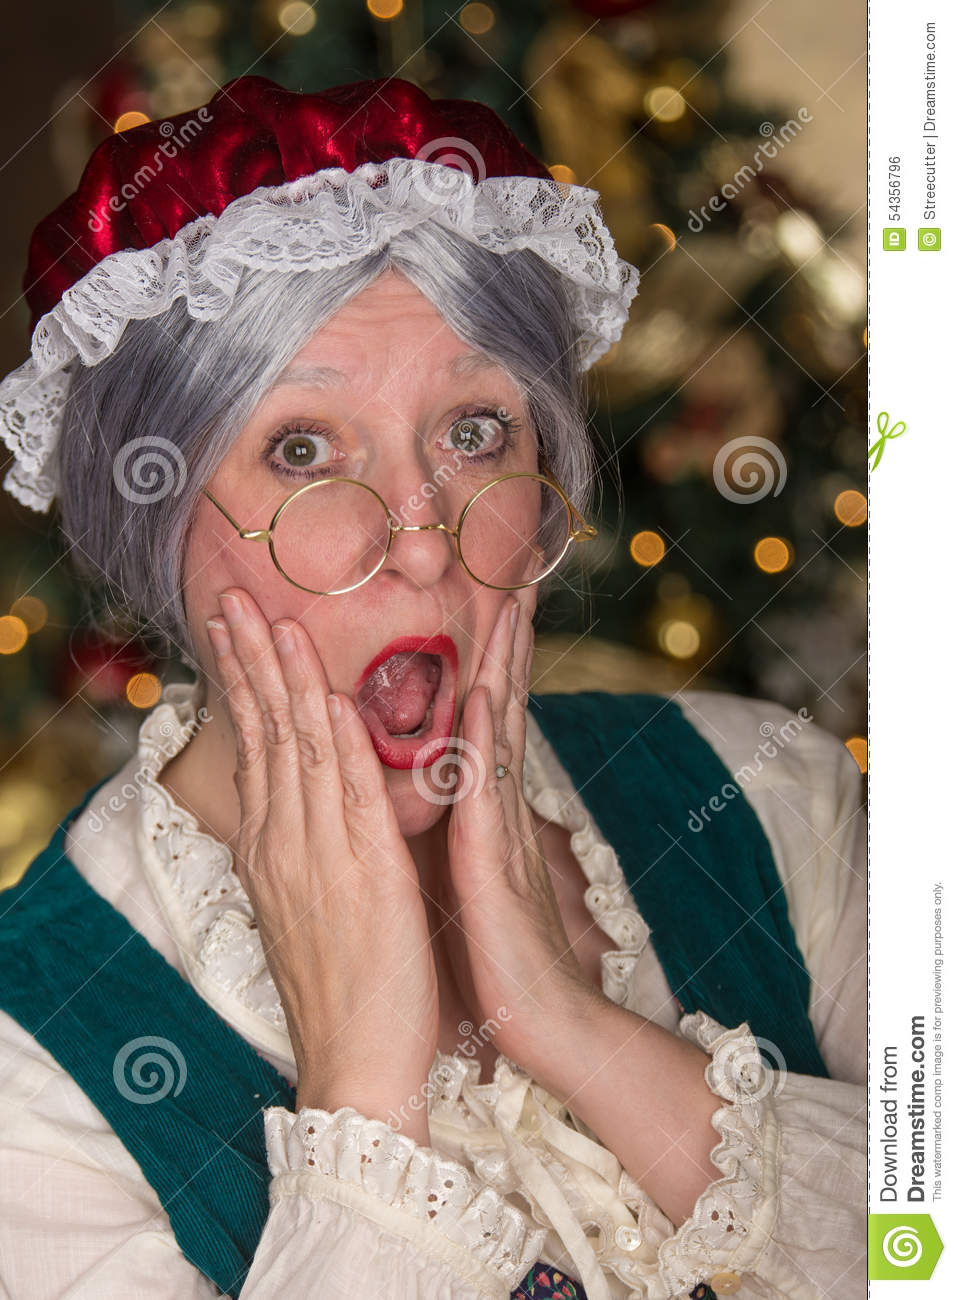 Mrs Clause is shocked